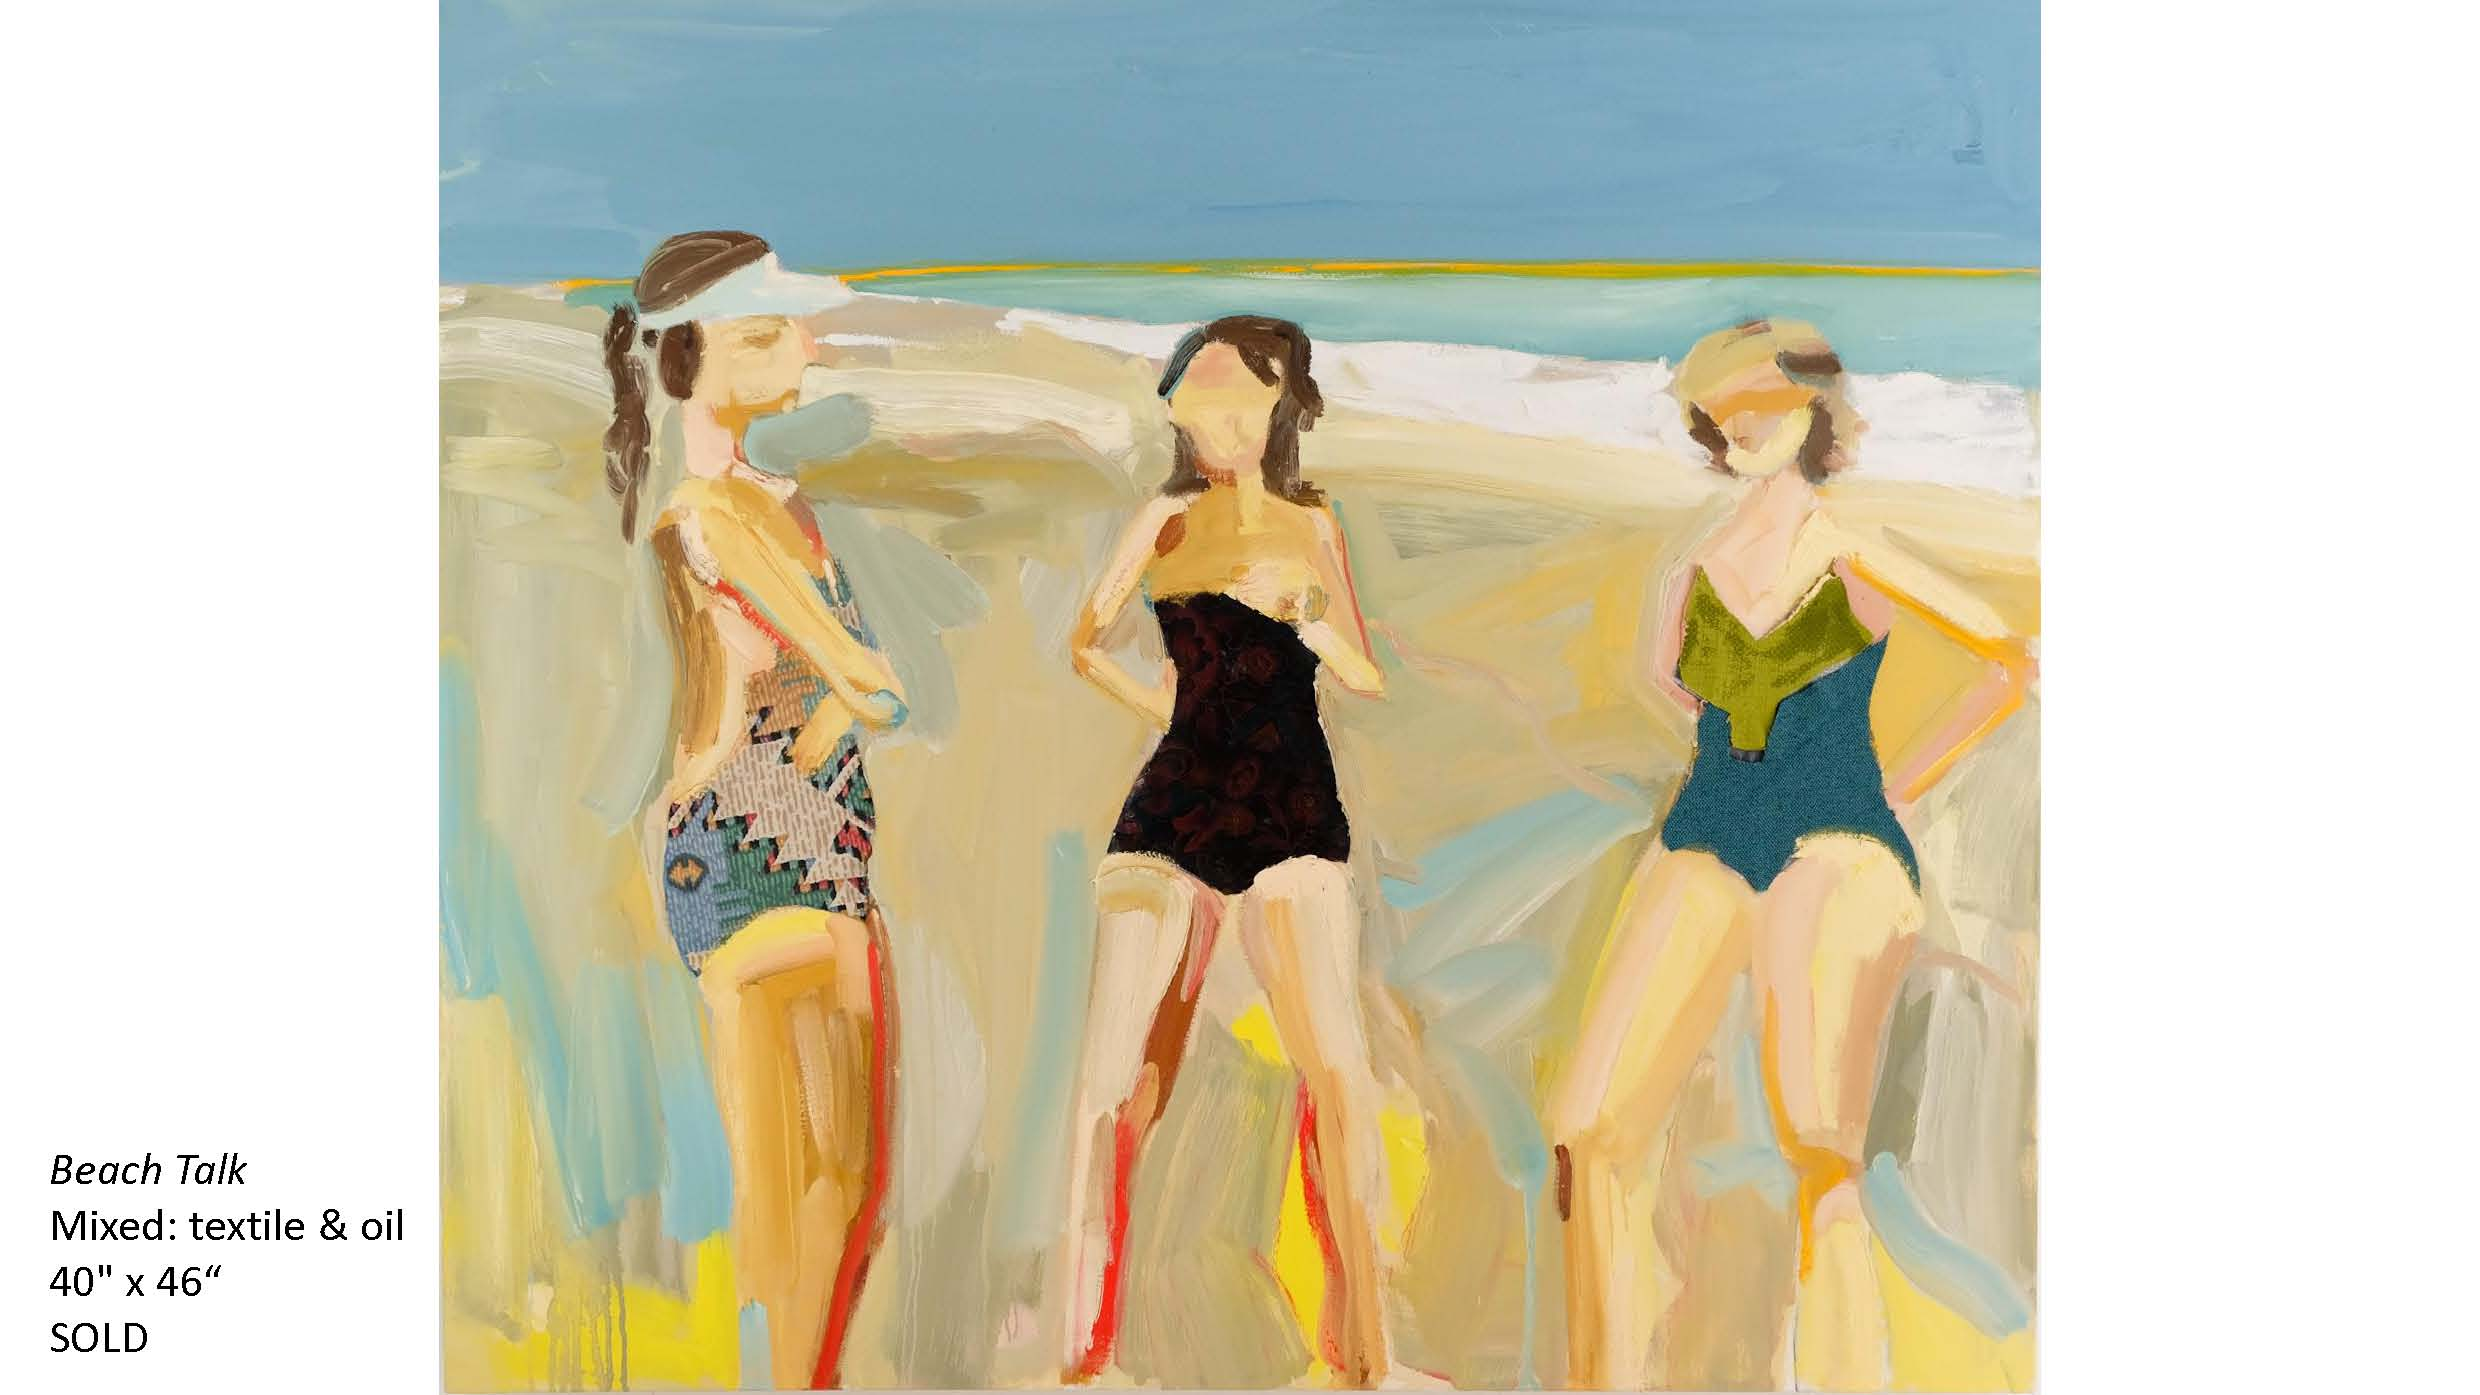 Beach Talk - Mixed textime and oil - 40x46